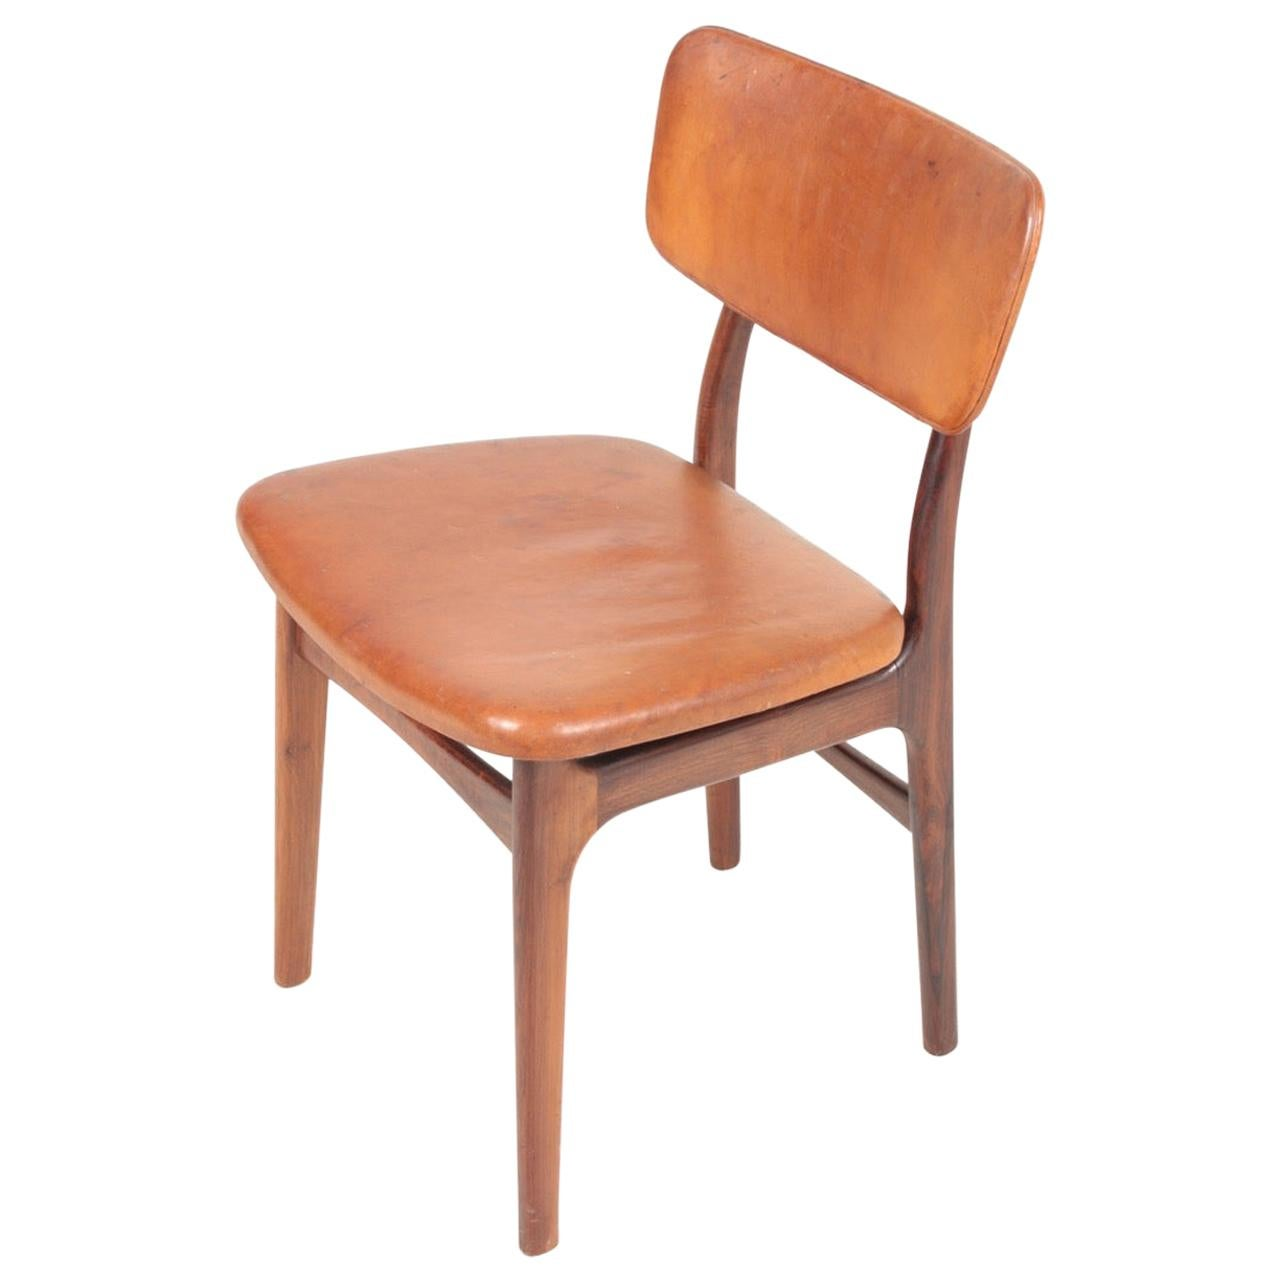 Midcentury Side Chair in Rosewood and Patinated Leather by Gustav Bertelsen